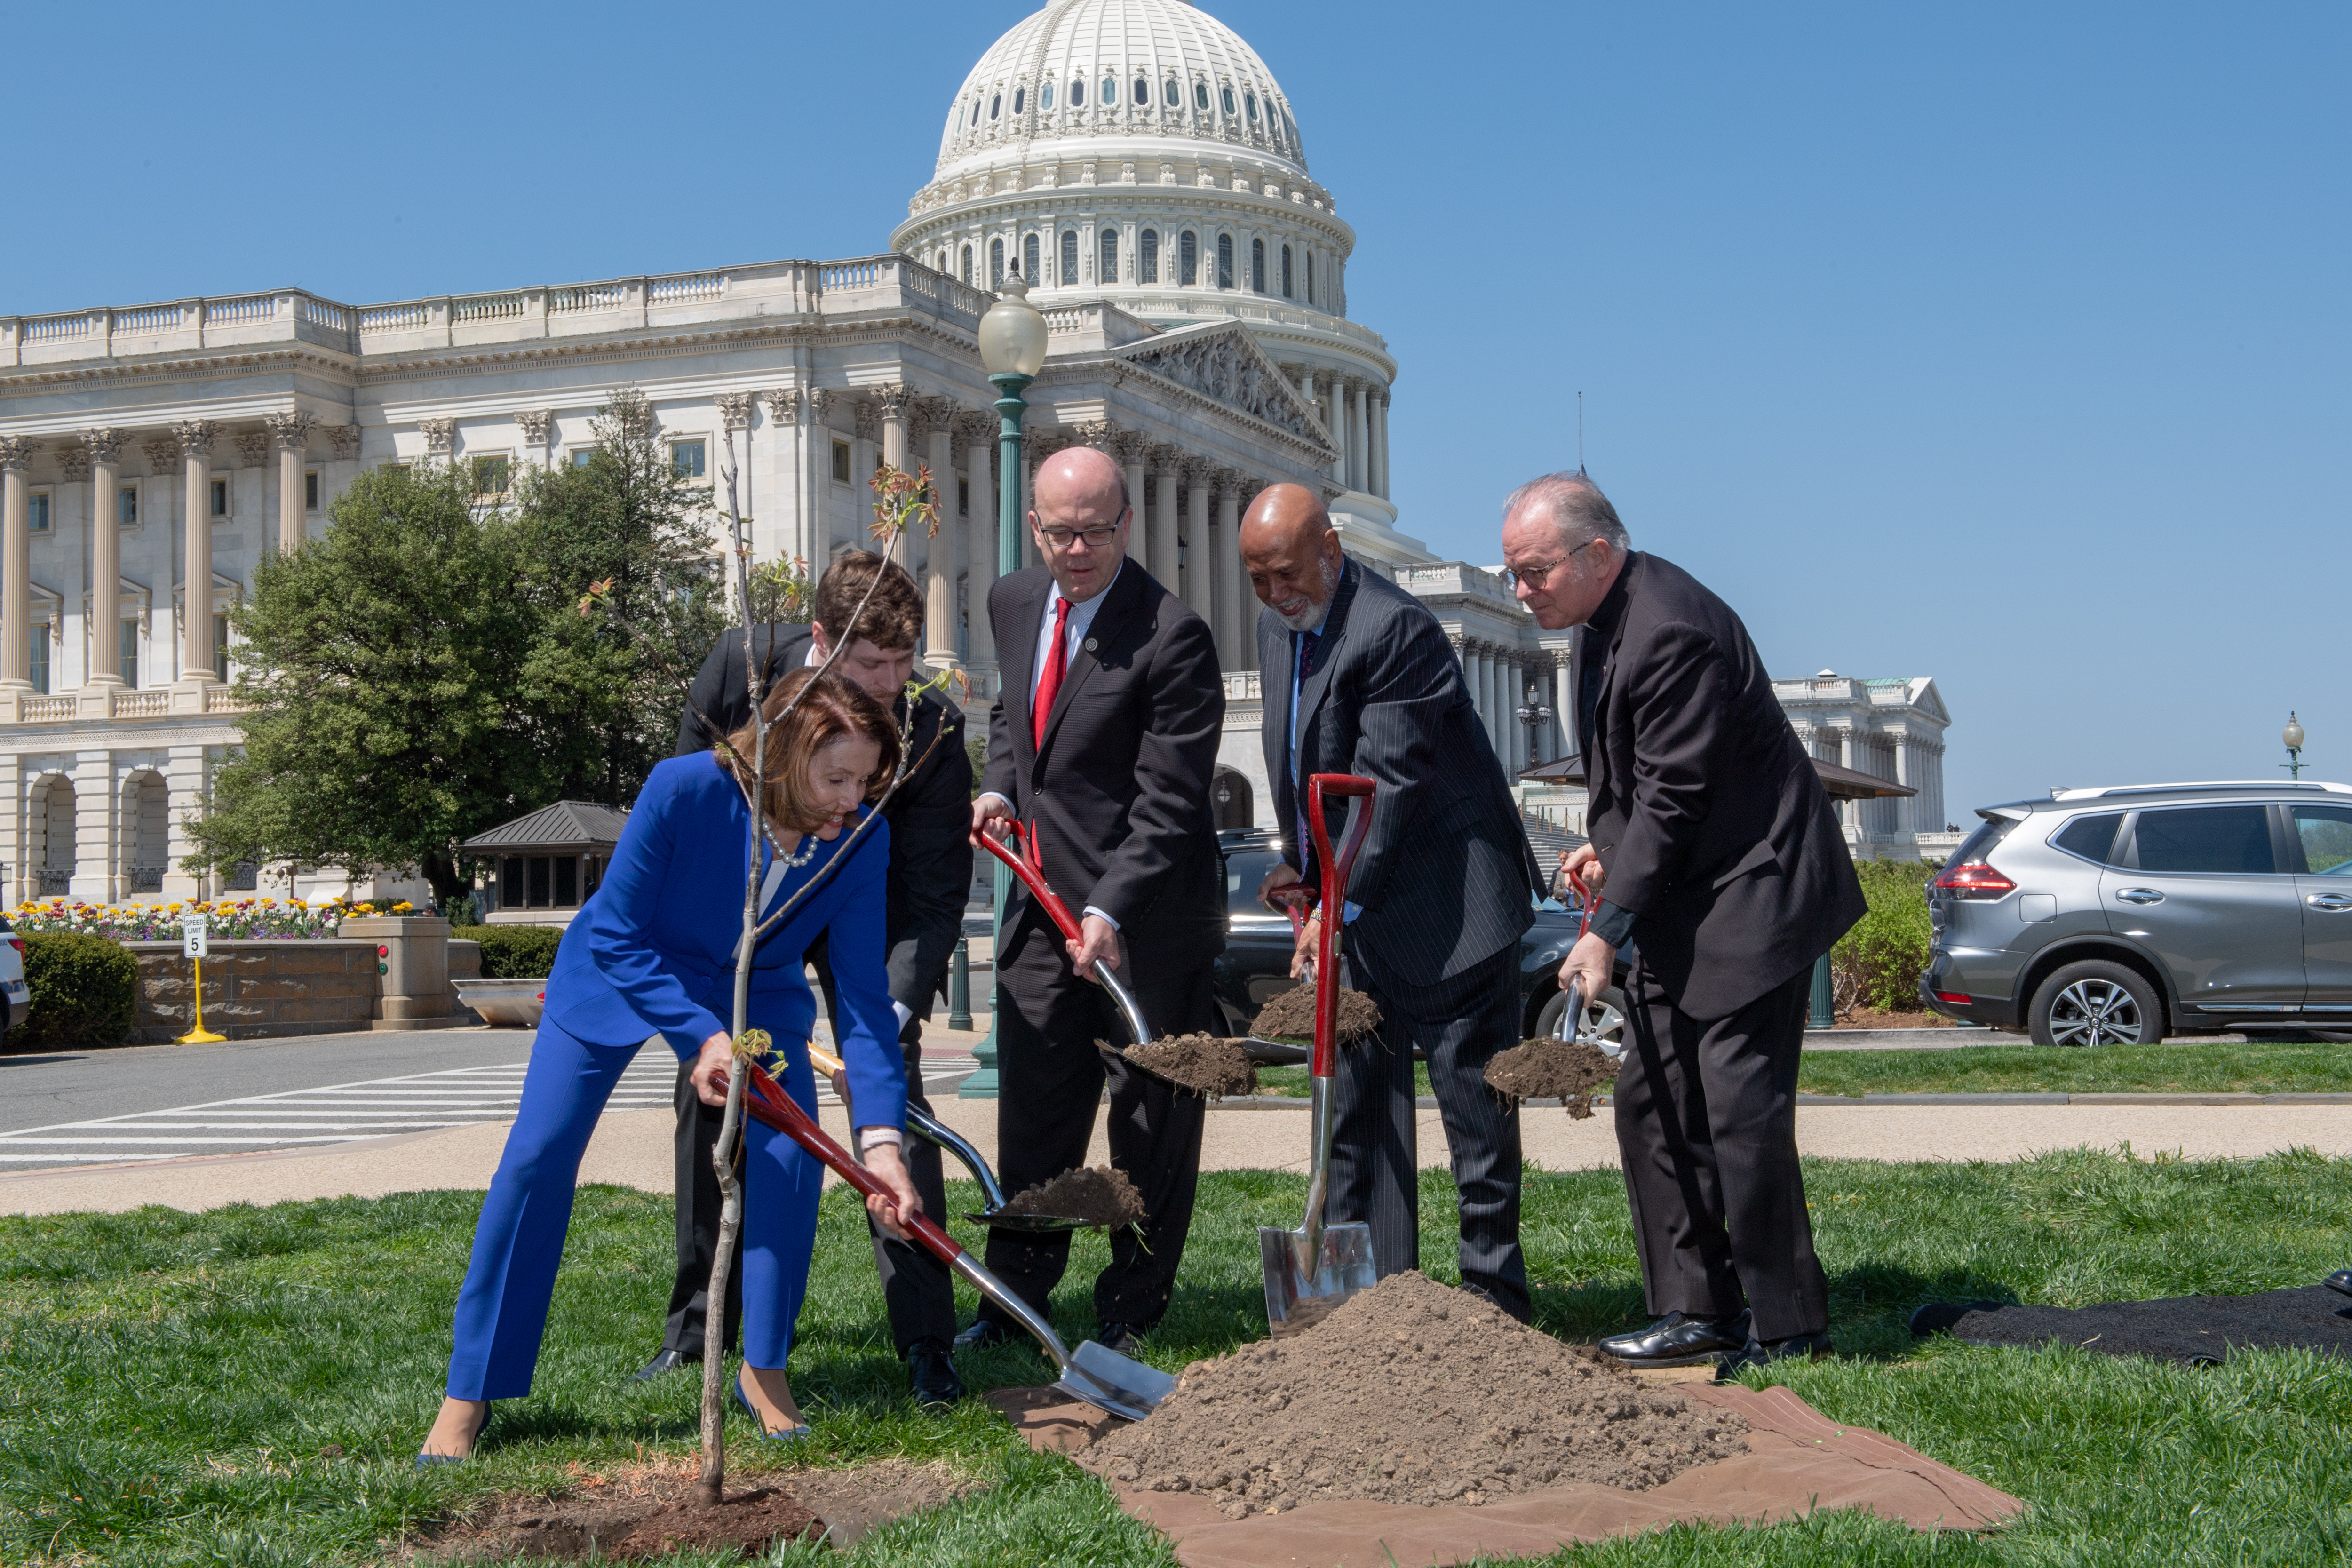 A walnut tree planted on the Capitol Grounds in memory of Rep. Slaughter